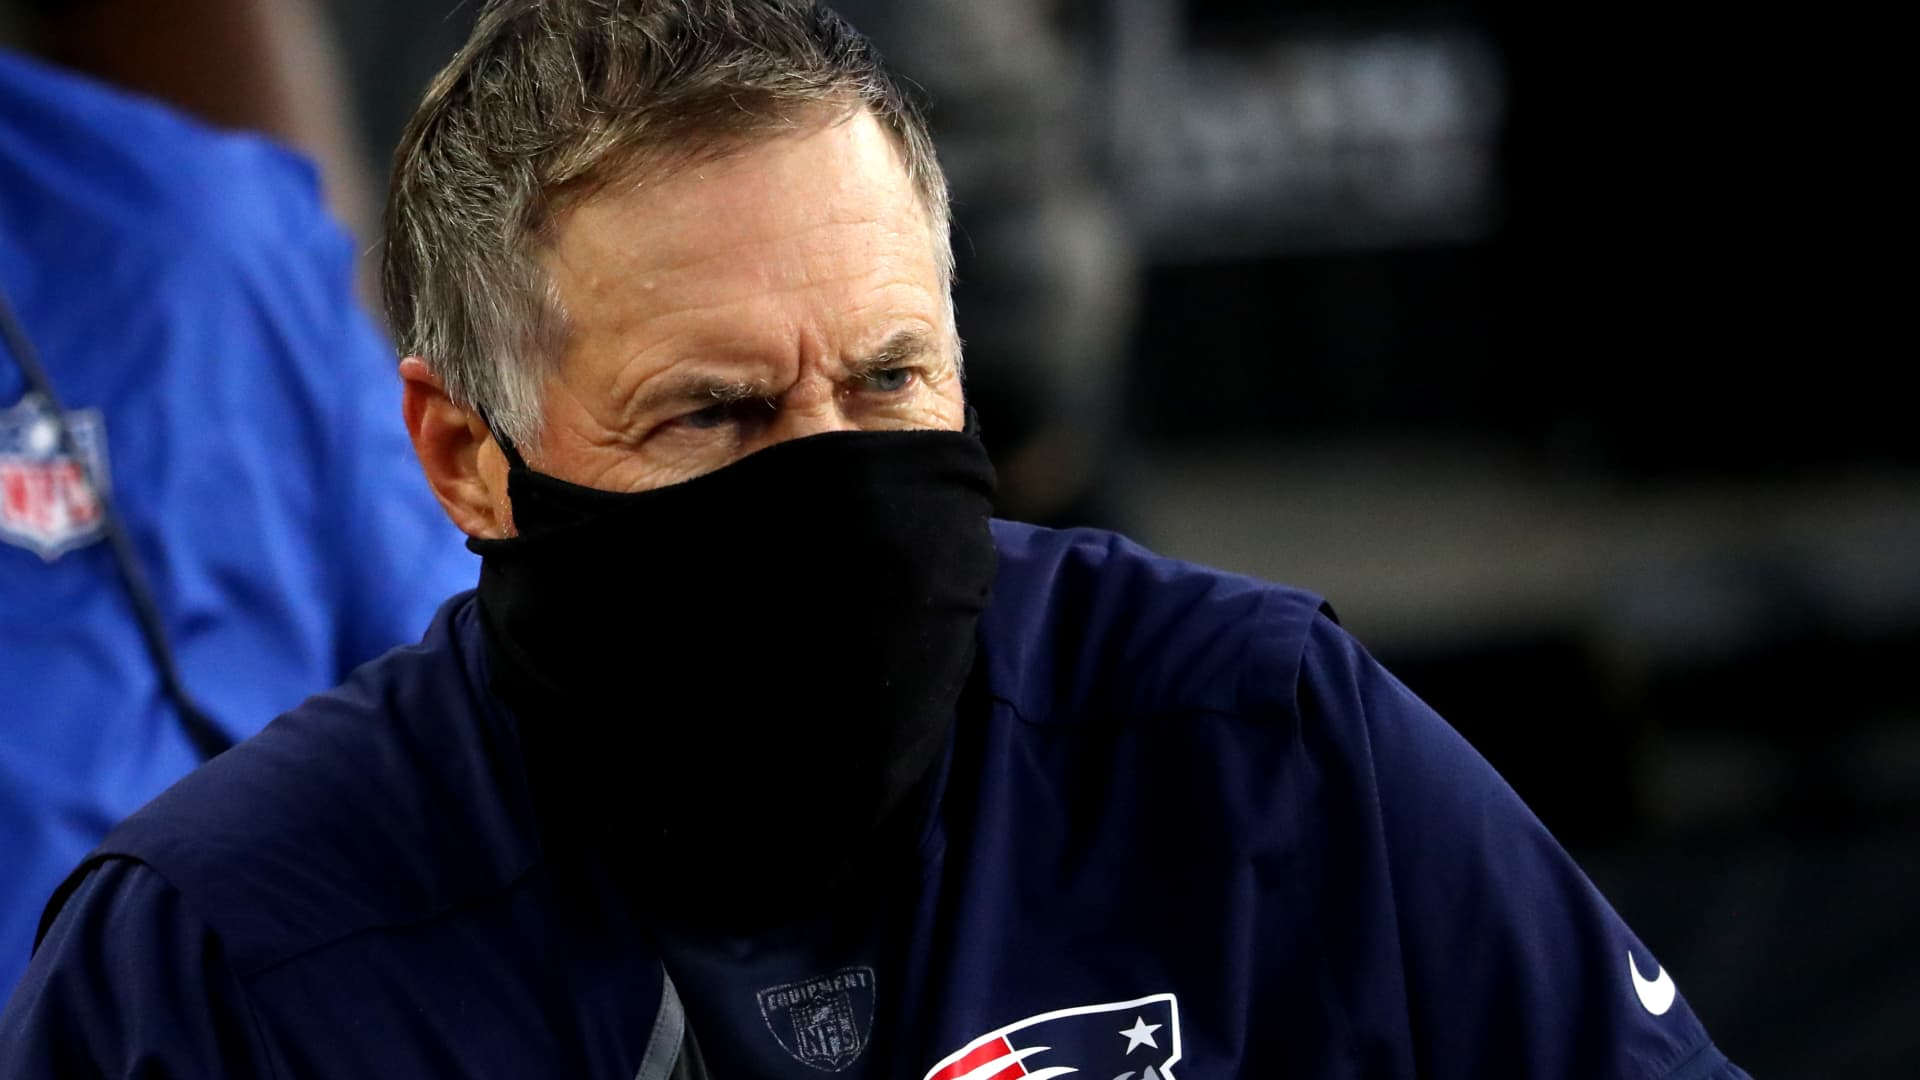 FOXBOROUGH, MASSACHUSETTS - OCTOBER 25: Head coach Bill Belichick of the New England Patriots looks on during the game against the San Francisco 49ersat Gillette Stadium on October 25, 2020 in Foxborough, Massachusetts. (Photo by Maddie Meyer/Getty Images)